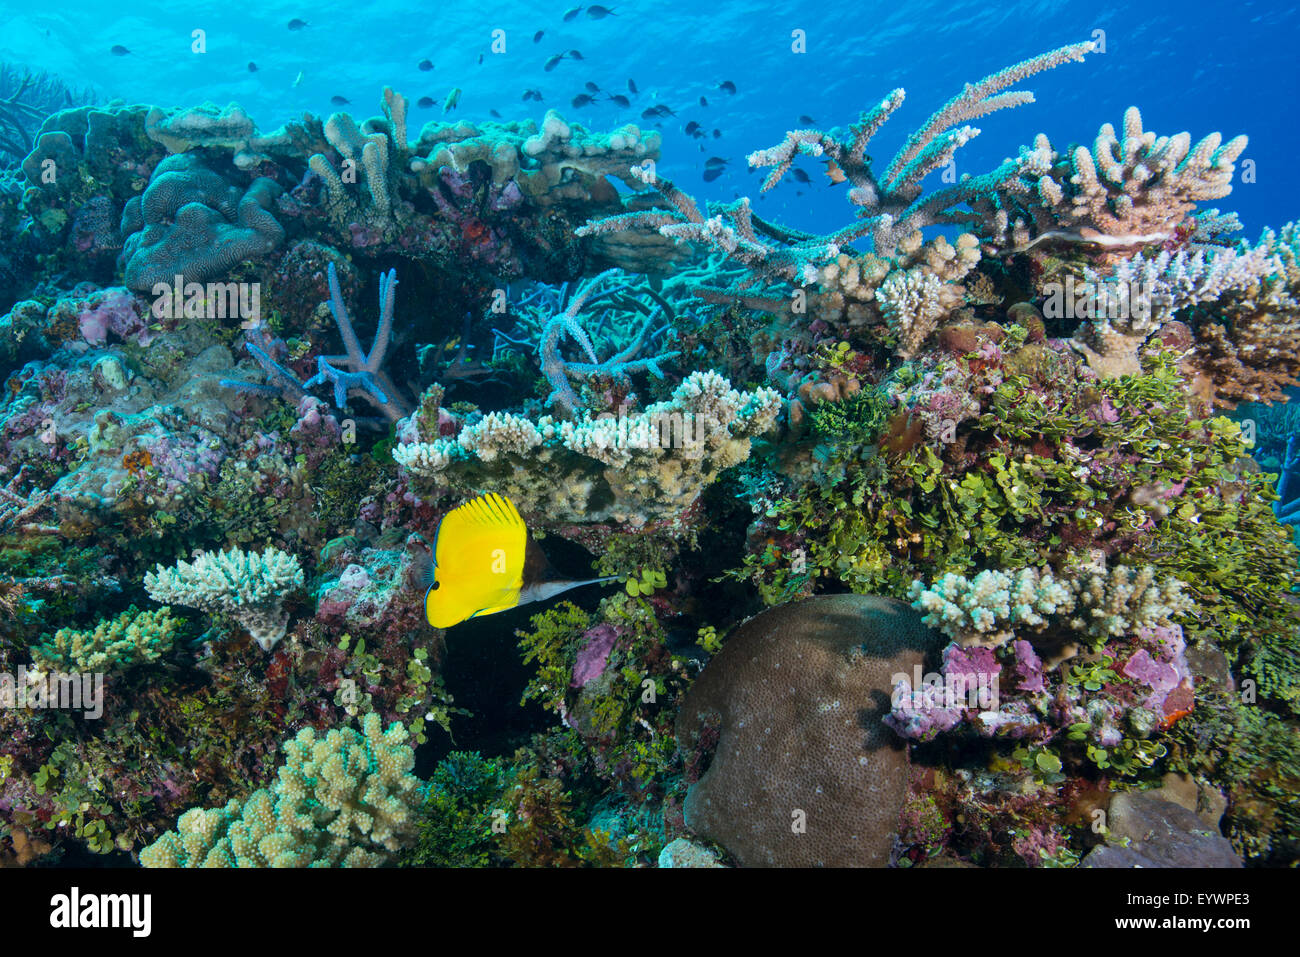 Colourful healthy hard and soft coral reef with long nosed butterflyfish, Matangi Island, Vanua Levu, Fiji, Pacific - Stock Image